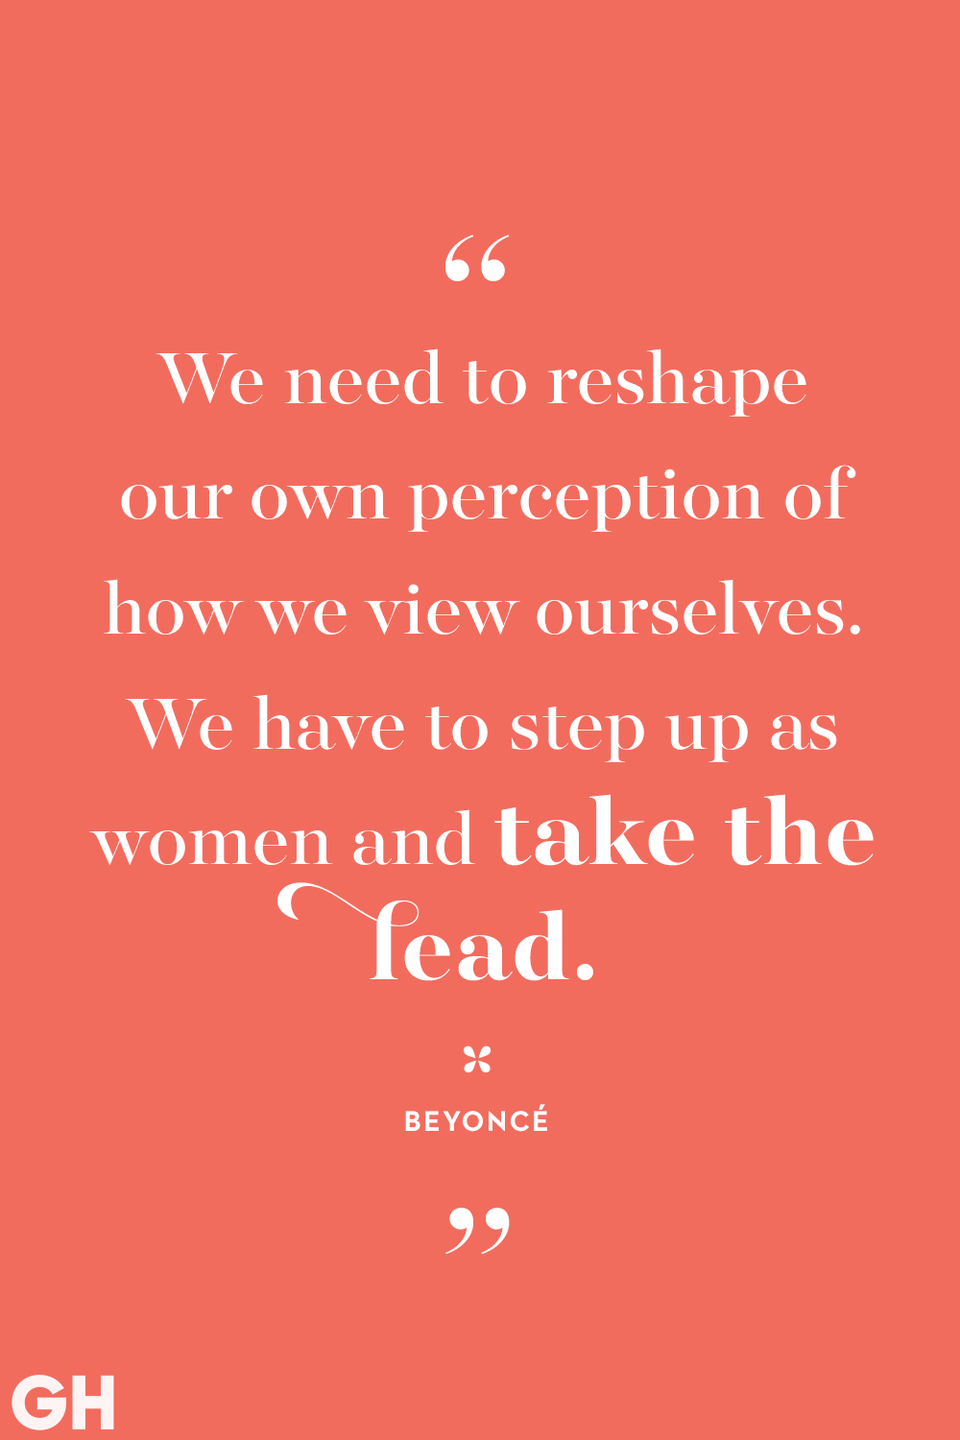 <p>We need to reshape our own perception of how we view ourselves. We have to step up as women and take the lead.</p>